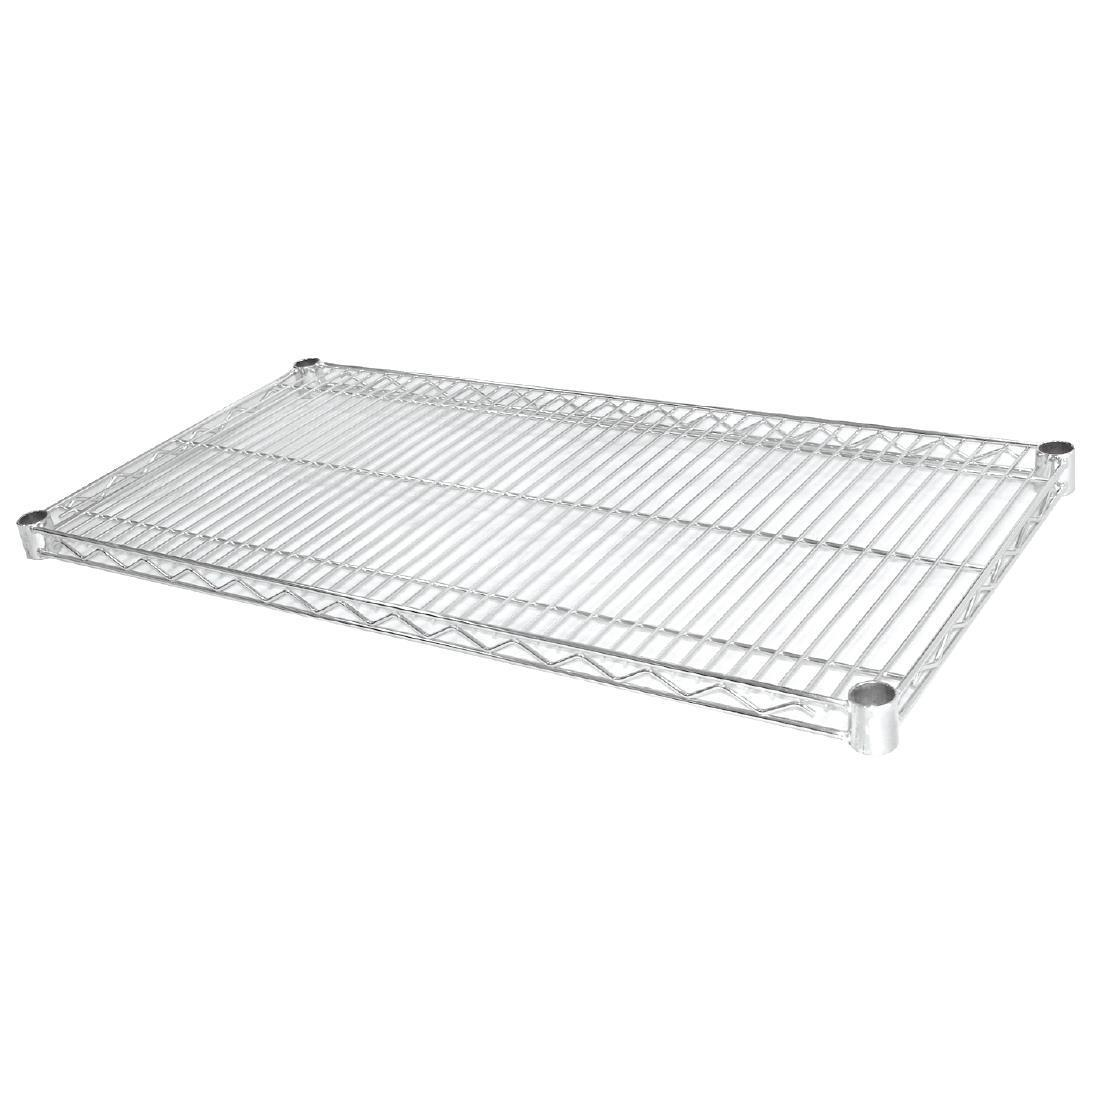 Vogue Chrome Wire Shelves 1220x457mm Pack of 2 - U890